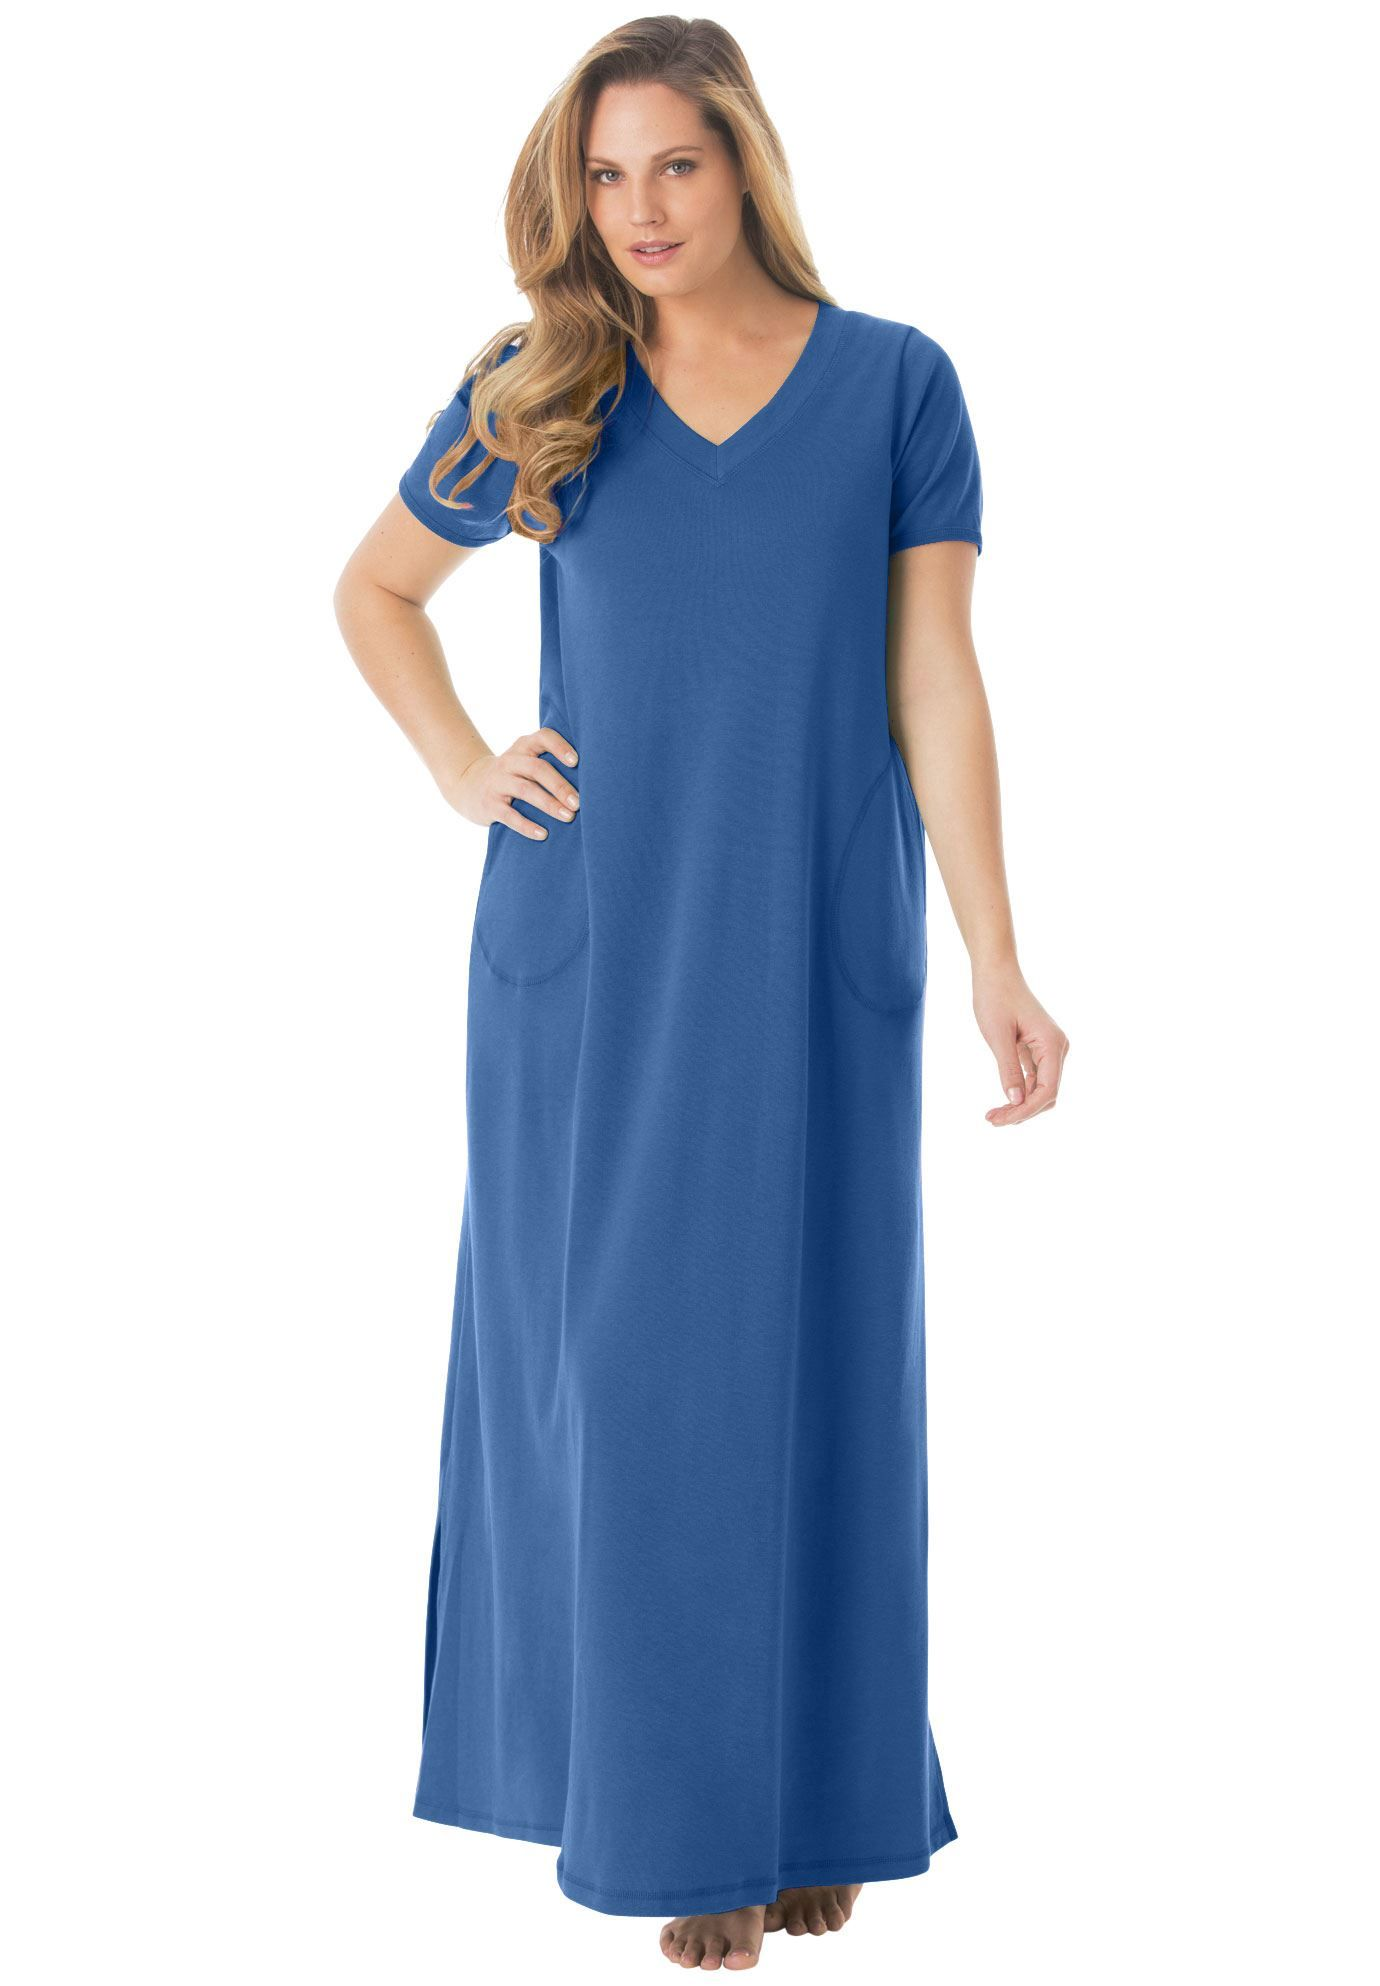 Maxi Lounger by Dreams & Co. - Women\'s Plus Size Clothing ...